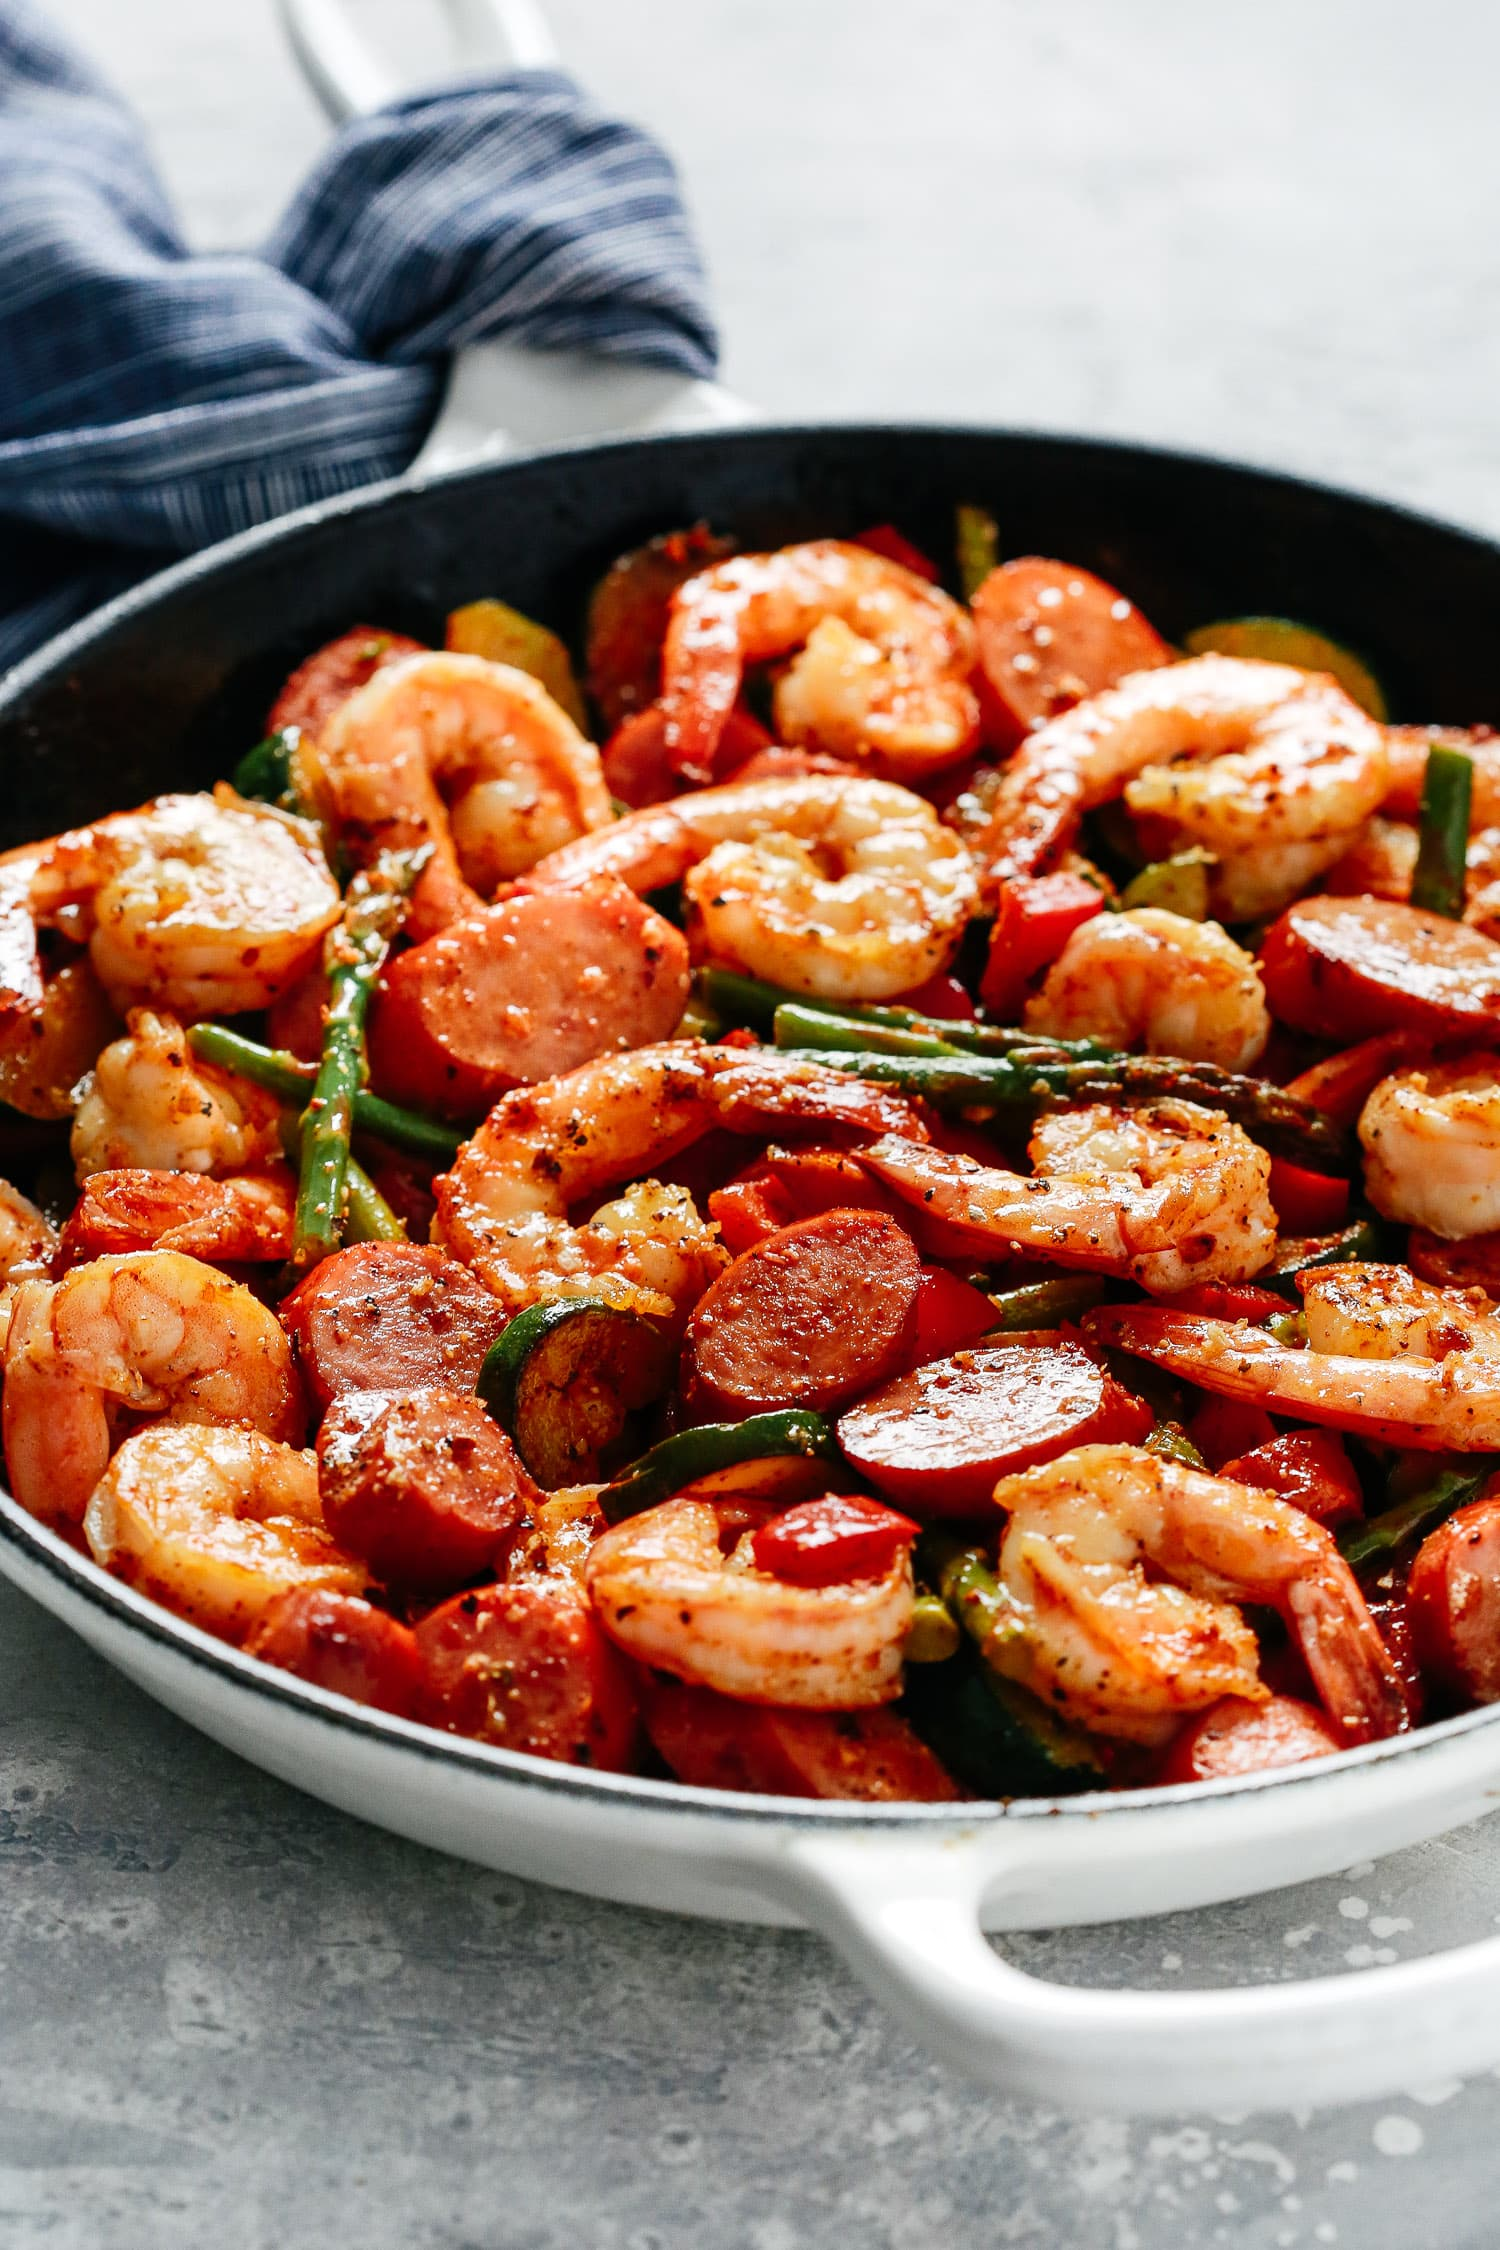 A white skillet with shrimp, sausage, and asparagus.